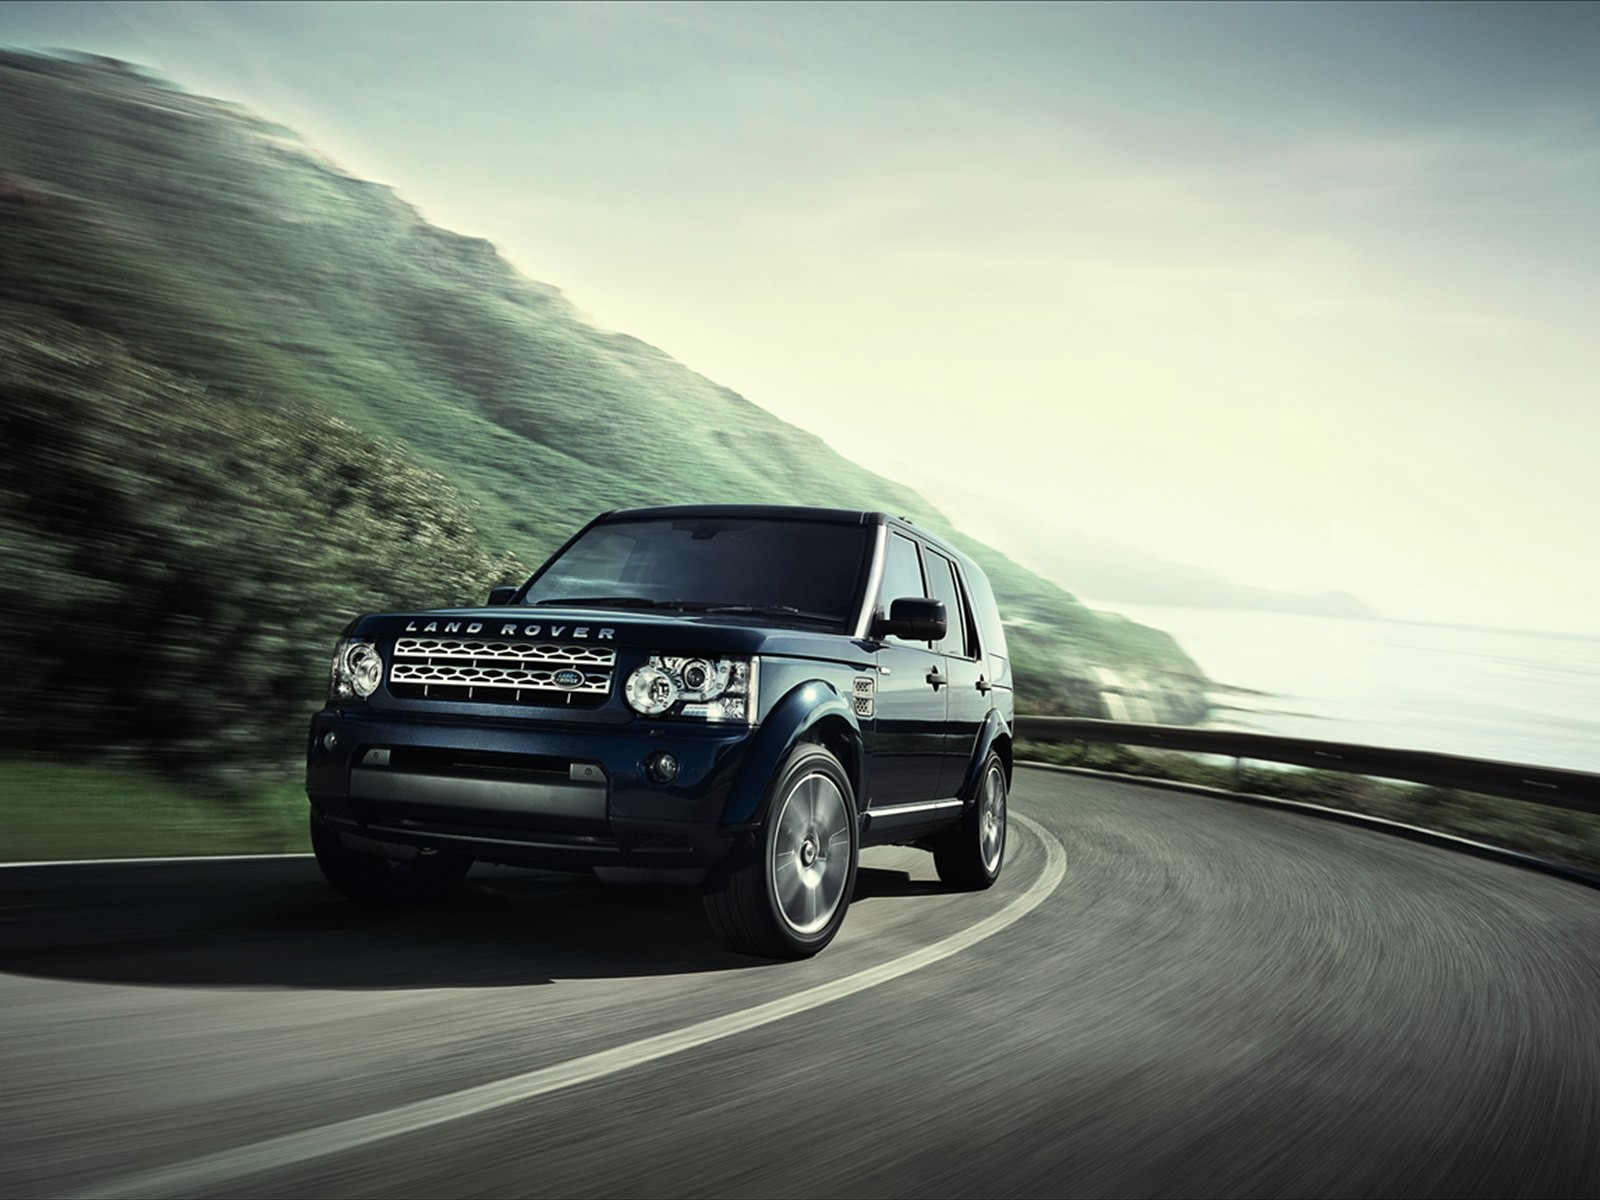 Land Rover Discovery 4 Wallpapers Land Rover Discovery 4